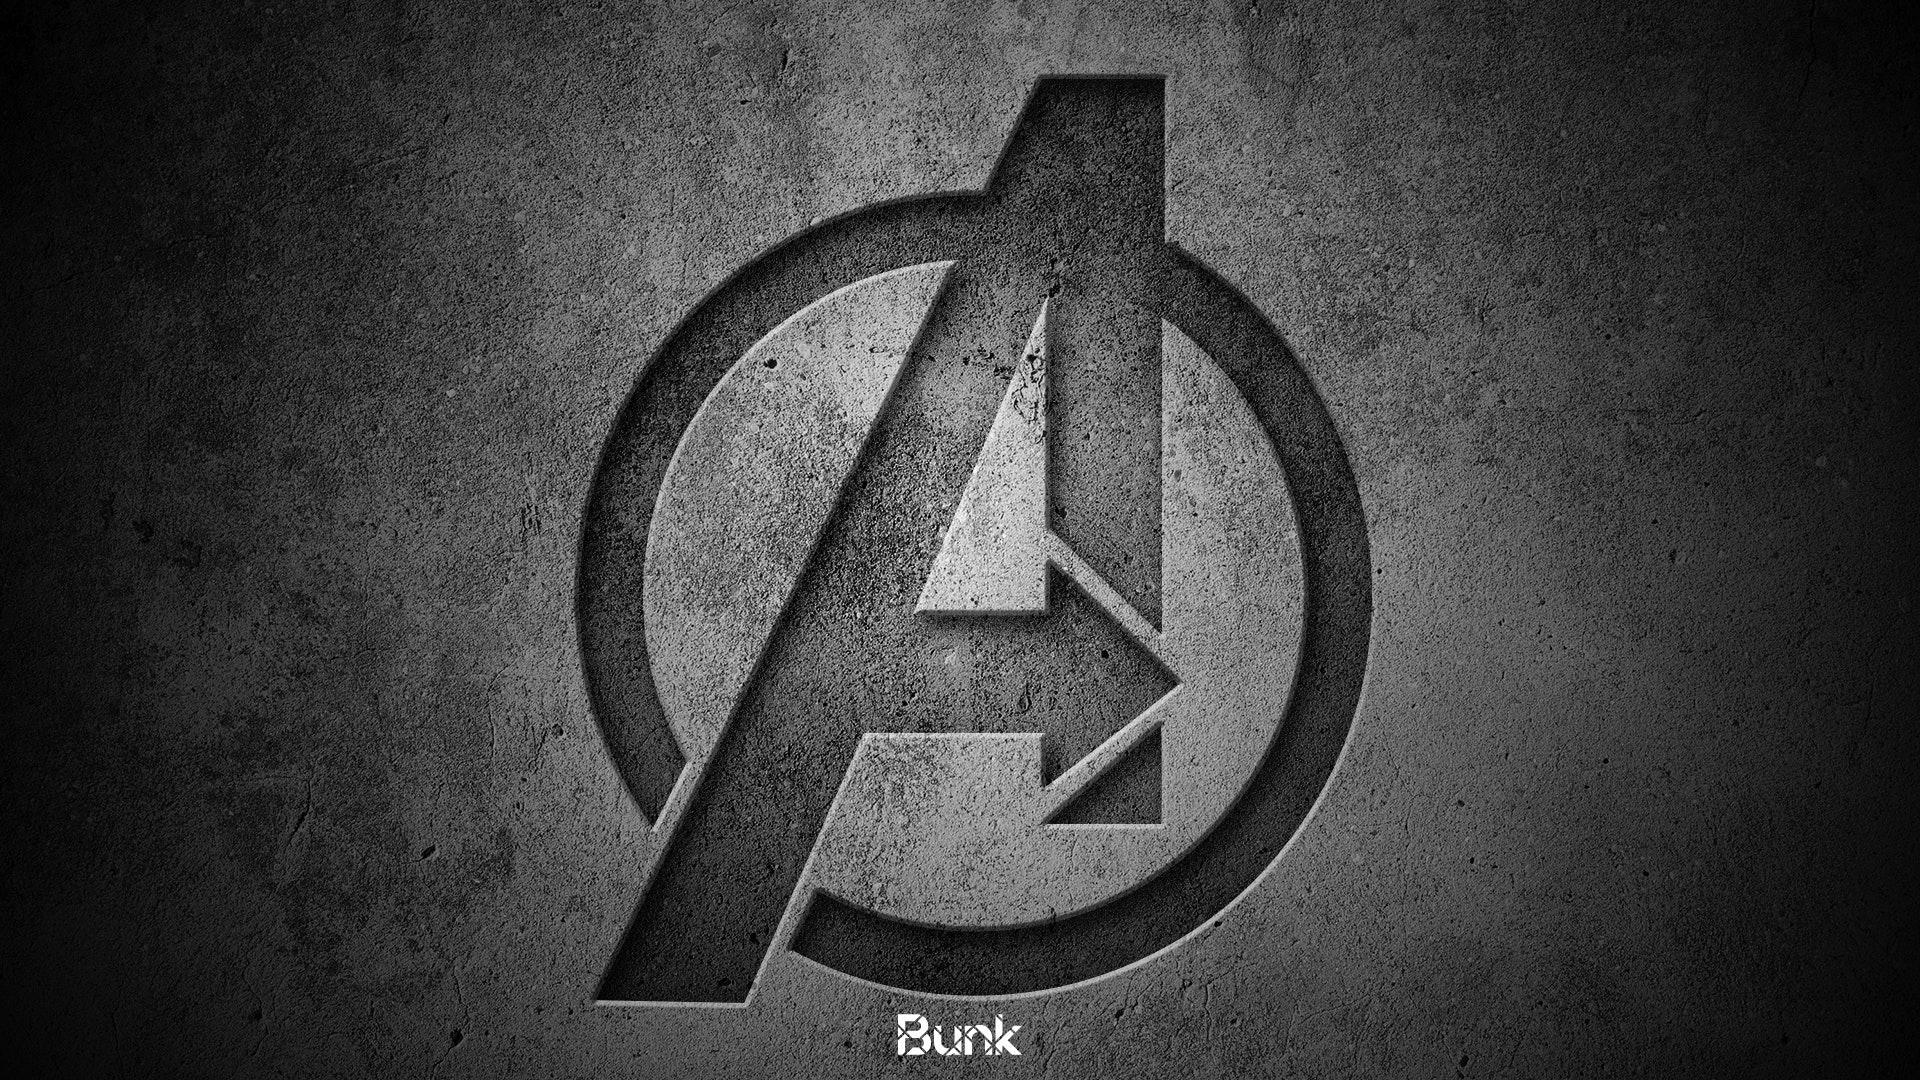 If you could bring back one character who died in the Avengers franchise, who would you save?